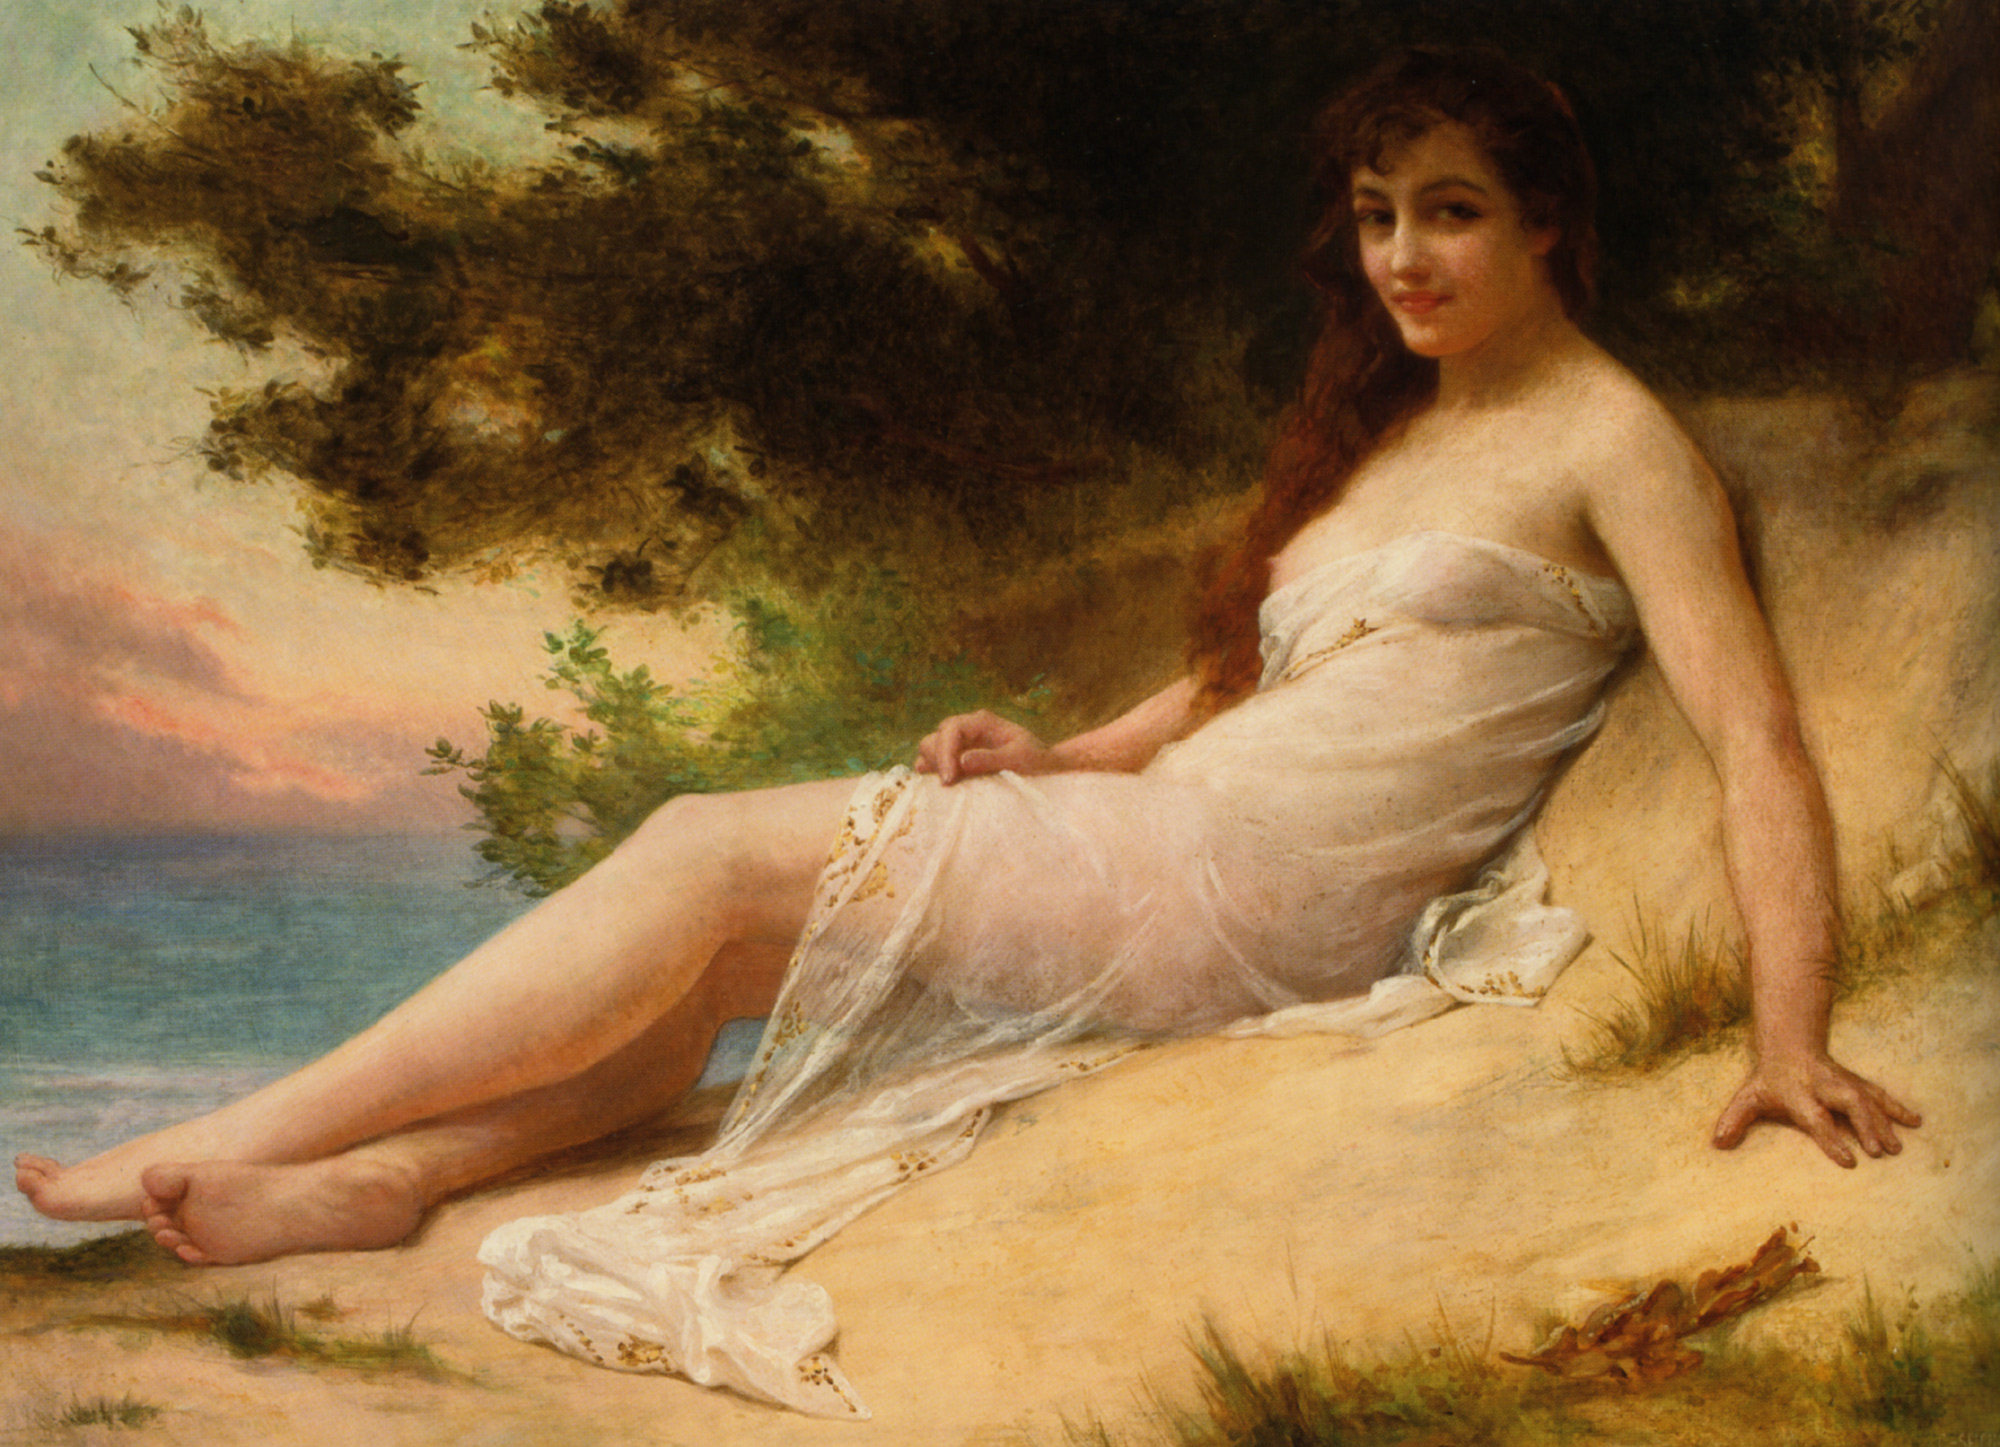 Solitude :: Guillaume Seignac - Young beauties portraits in art and painting ôîòî